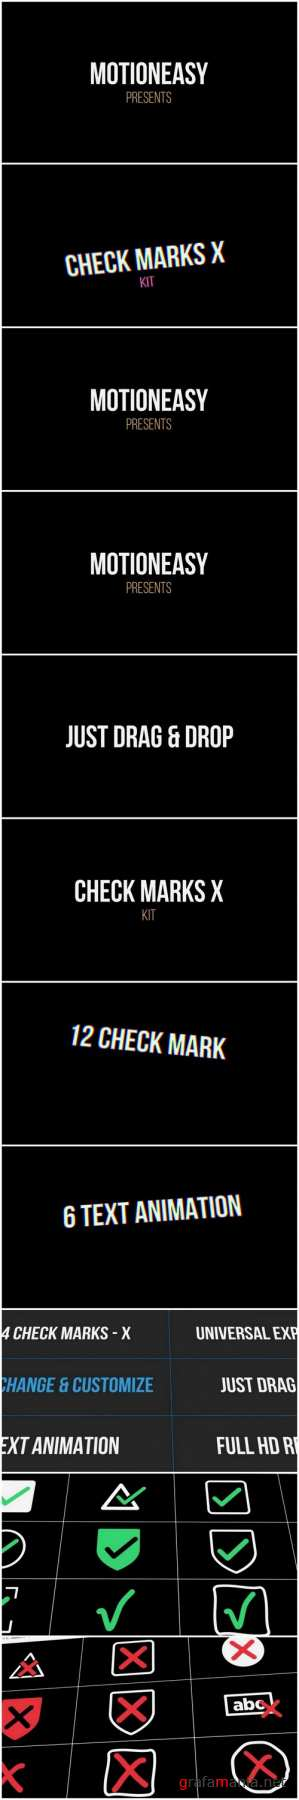 Check Marks X Kit After Effects Templates